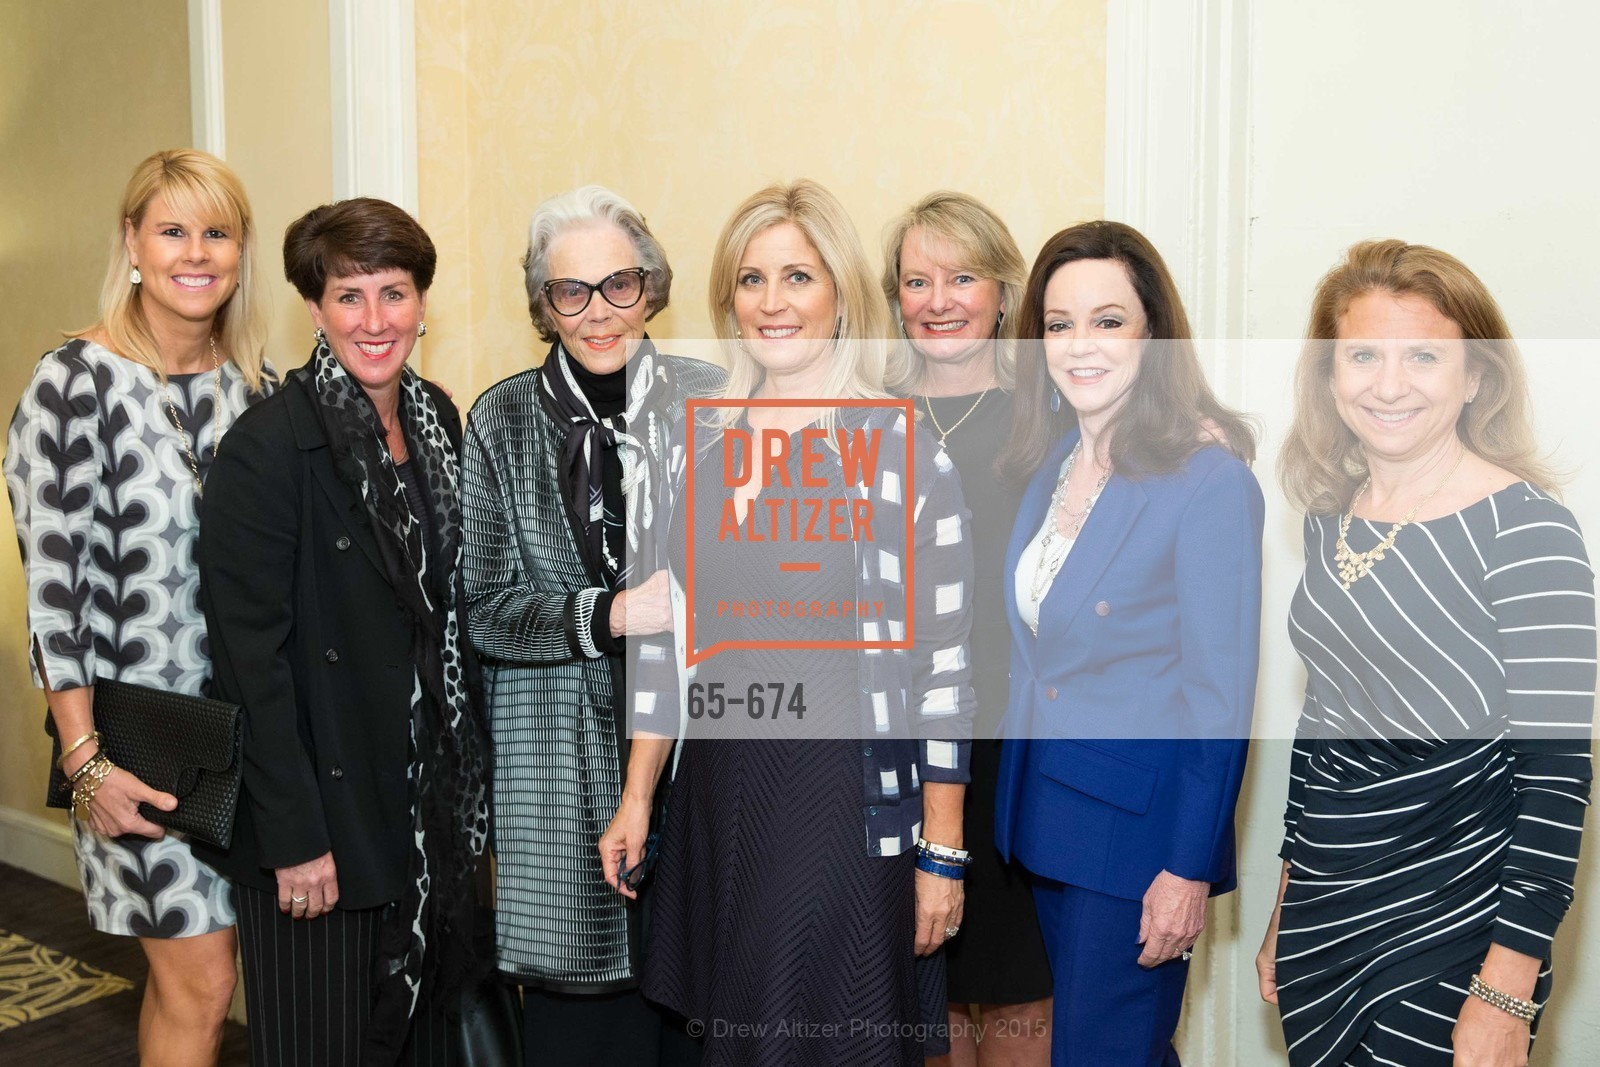 Karen Hill, Jane Inch, Gail DeMartini, Junior League of San Francisco's WATCH Luncheon, Fairmont Hotel. 950 Mason Street, May 4th, 2015,Drew Altizer, Drew Altizer Photography, full-service agency, private events, San Francisco photographer, photographer california